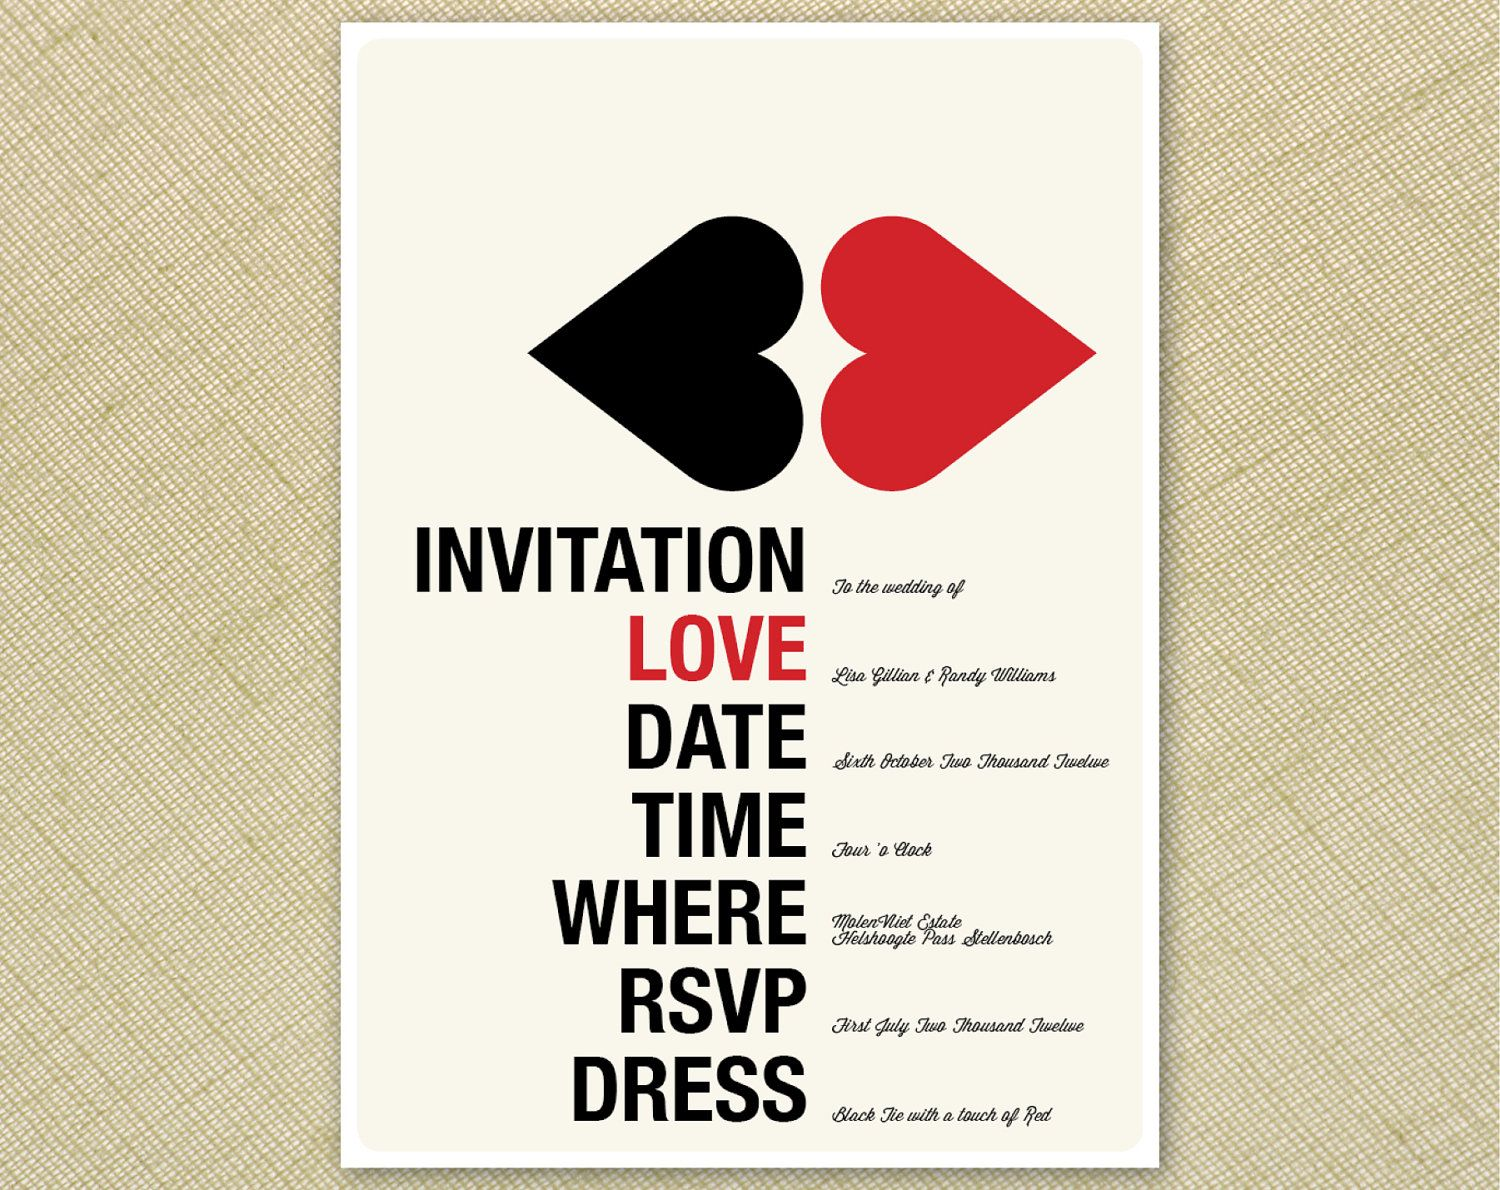 cool wedding invitations Wedding Invitation Retro Kissing Hearts Red Cream Black Funky Printable Designs 15 00 via